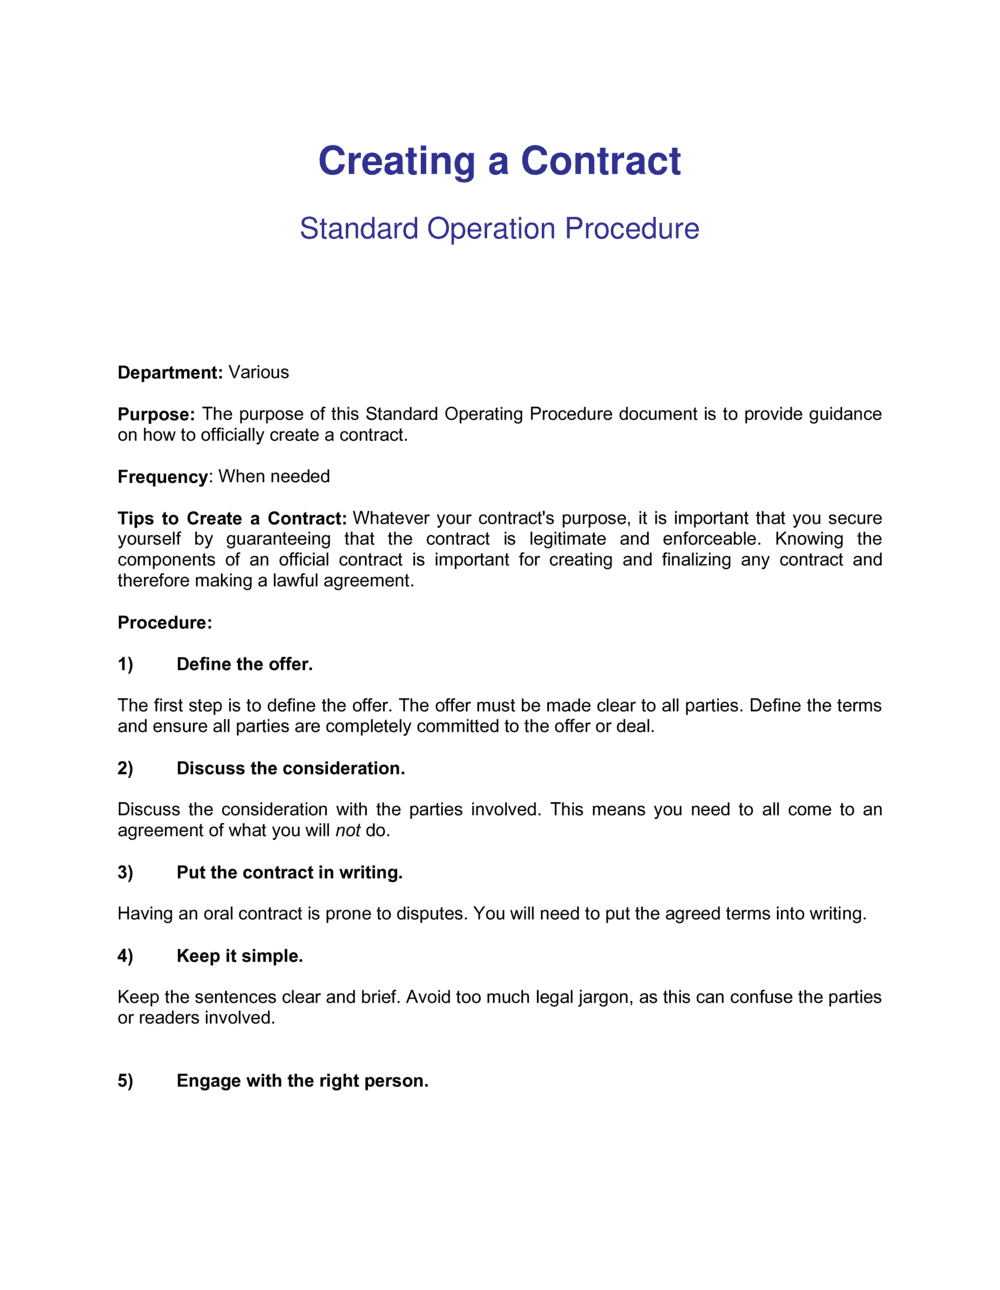 Business-in-a-Box's How To Create A Contract Template